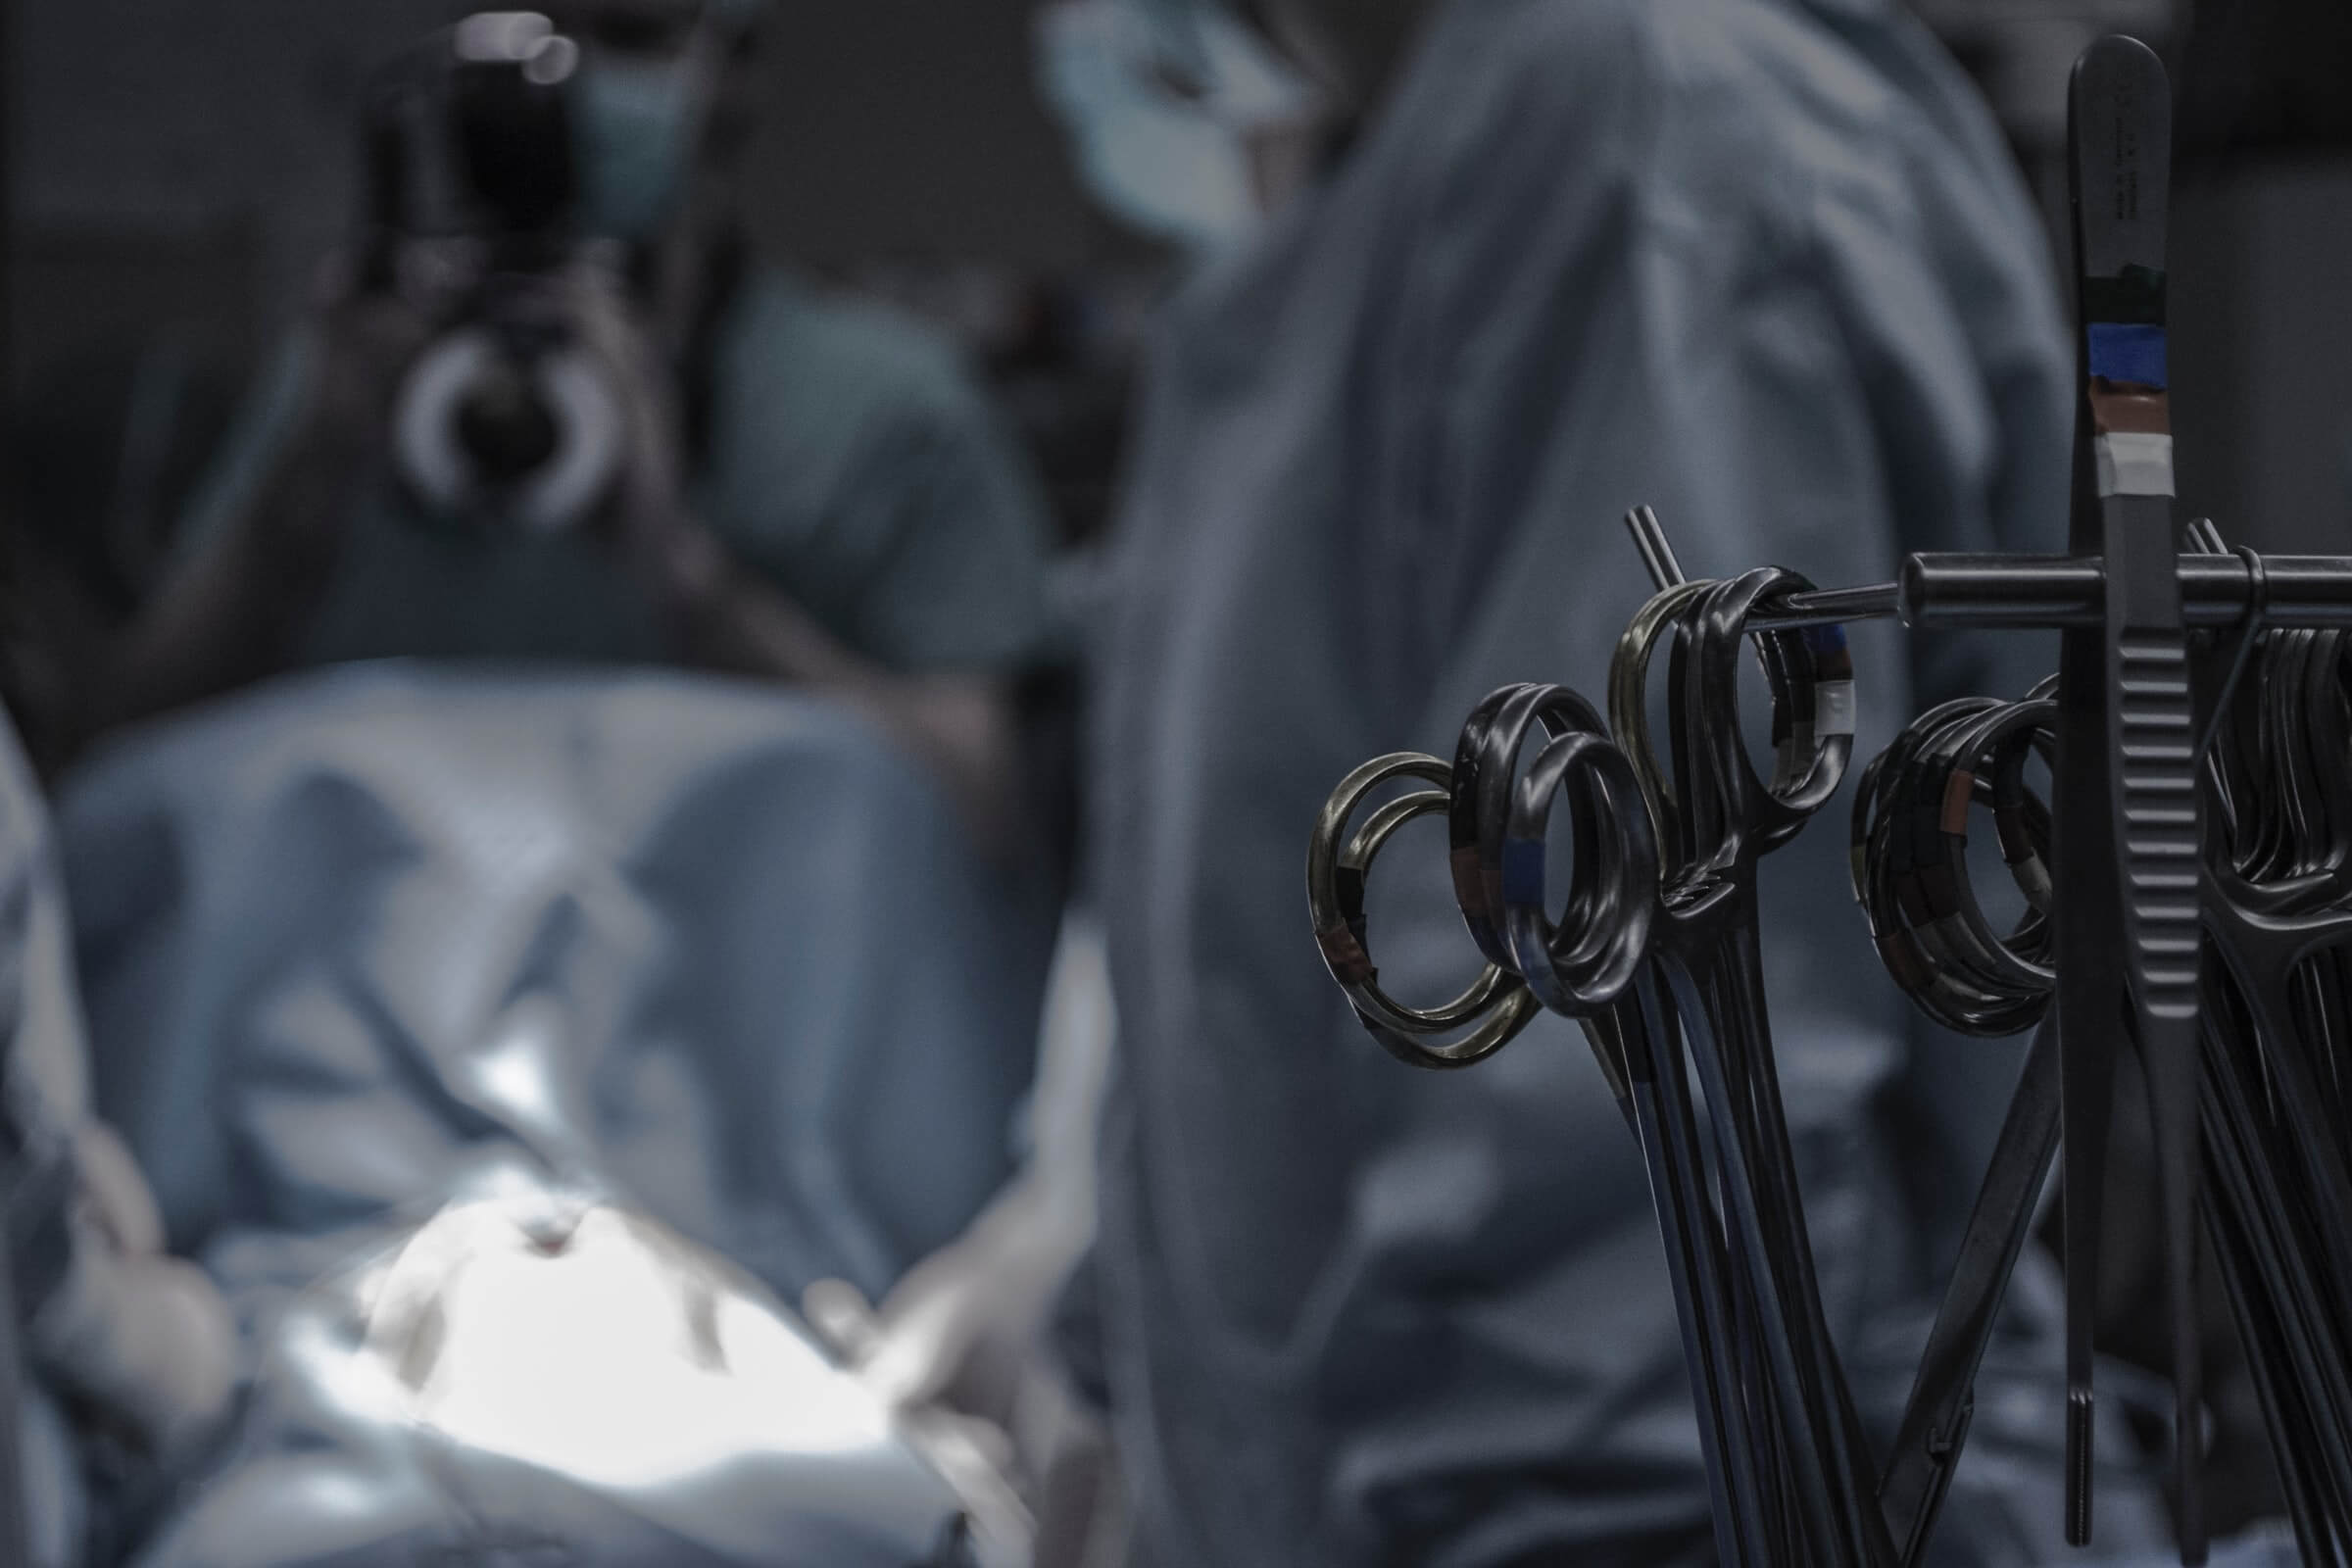 Surgical scissors on close up with doctors in the background